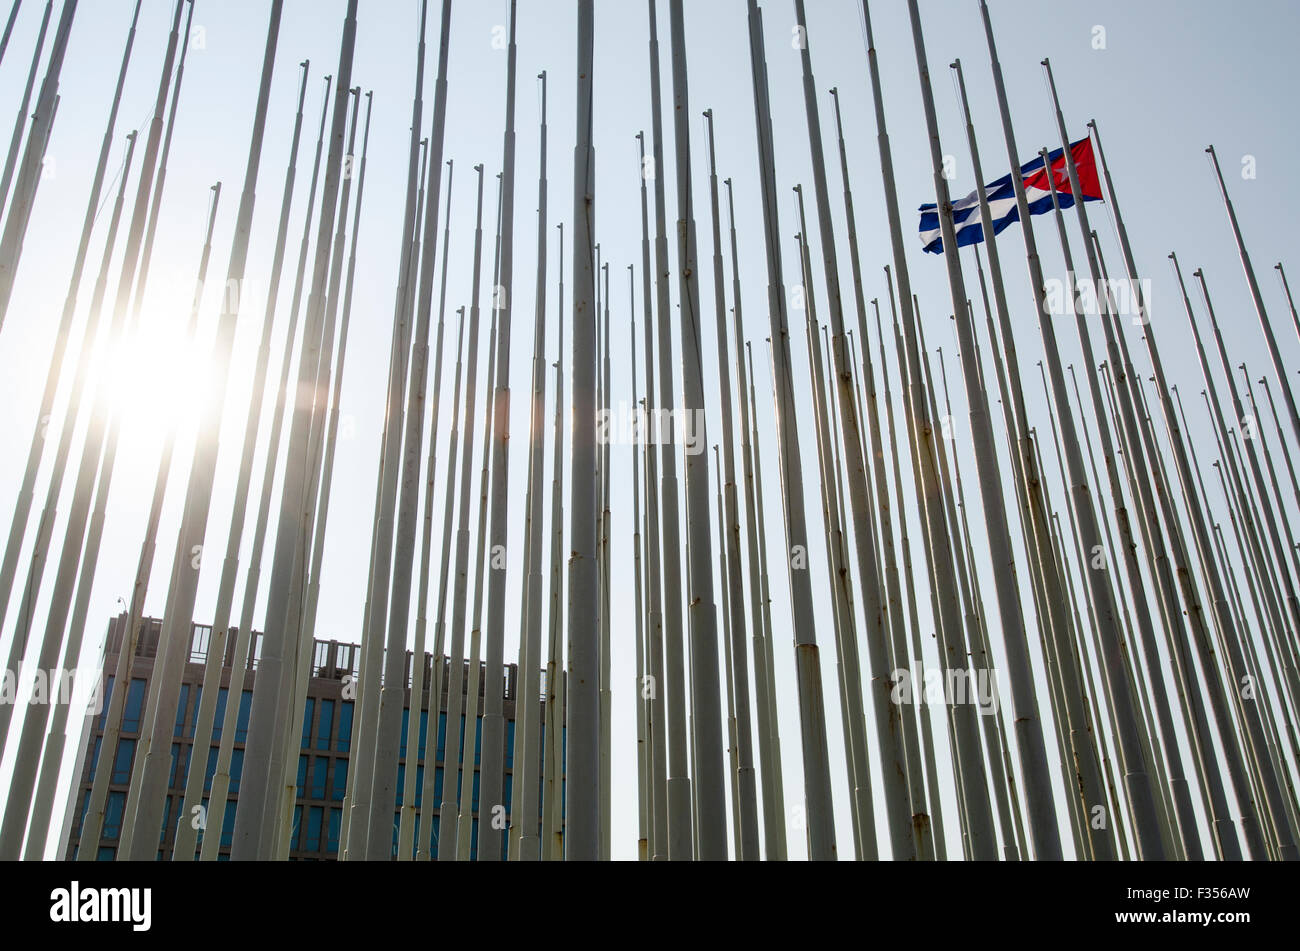 The former U.S. embassy building along Havana?s Malecón waterfront, Cuba. Stock Photo